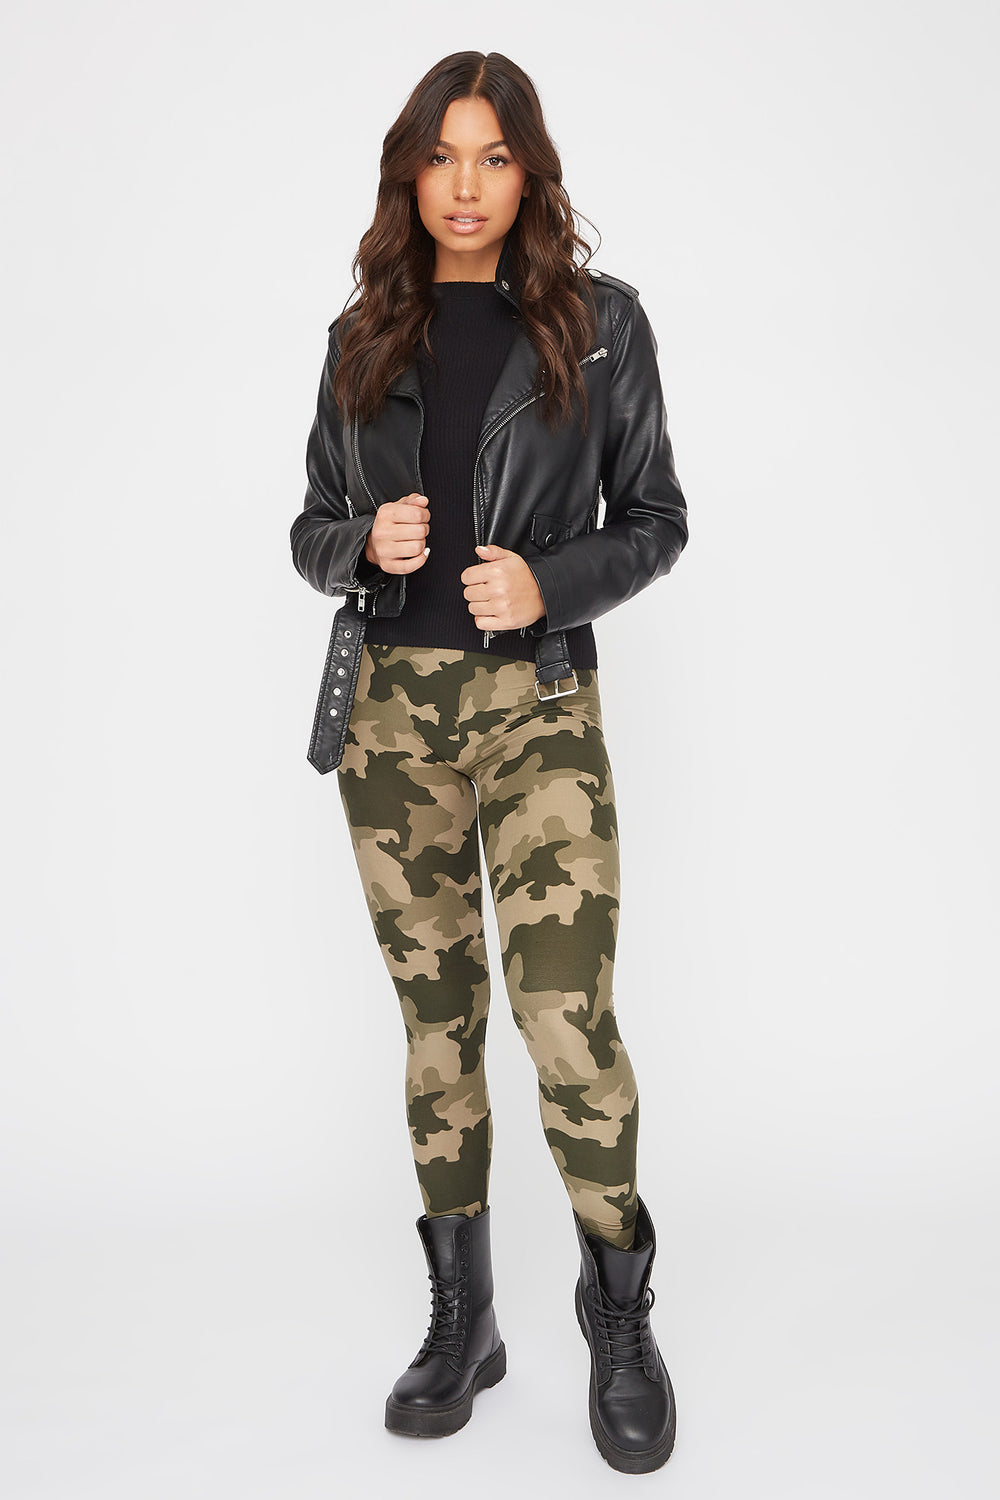 Camo Printed Leggings Camouflage